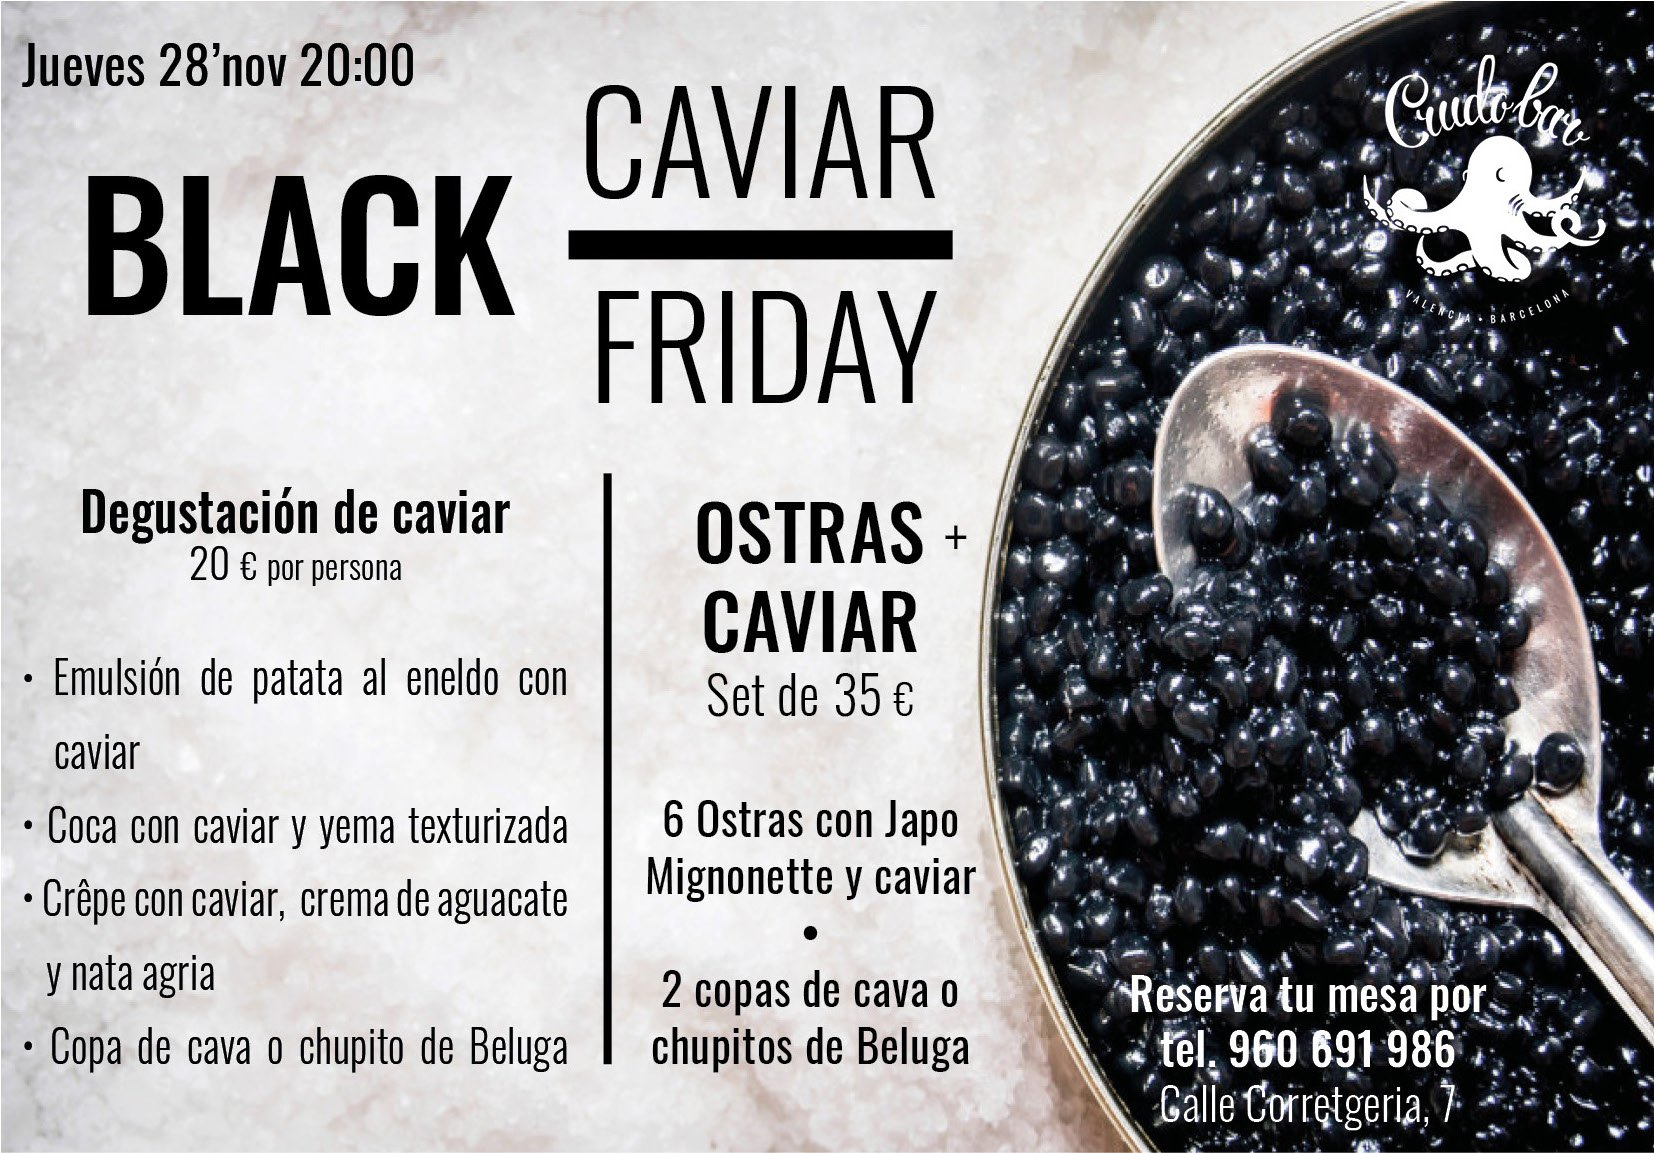 Black CAVIAR Friday